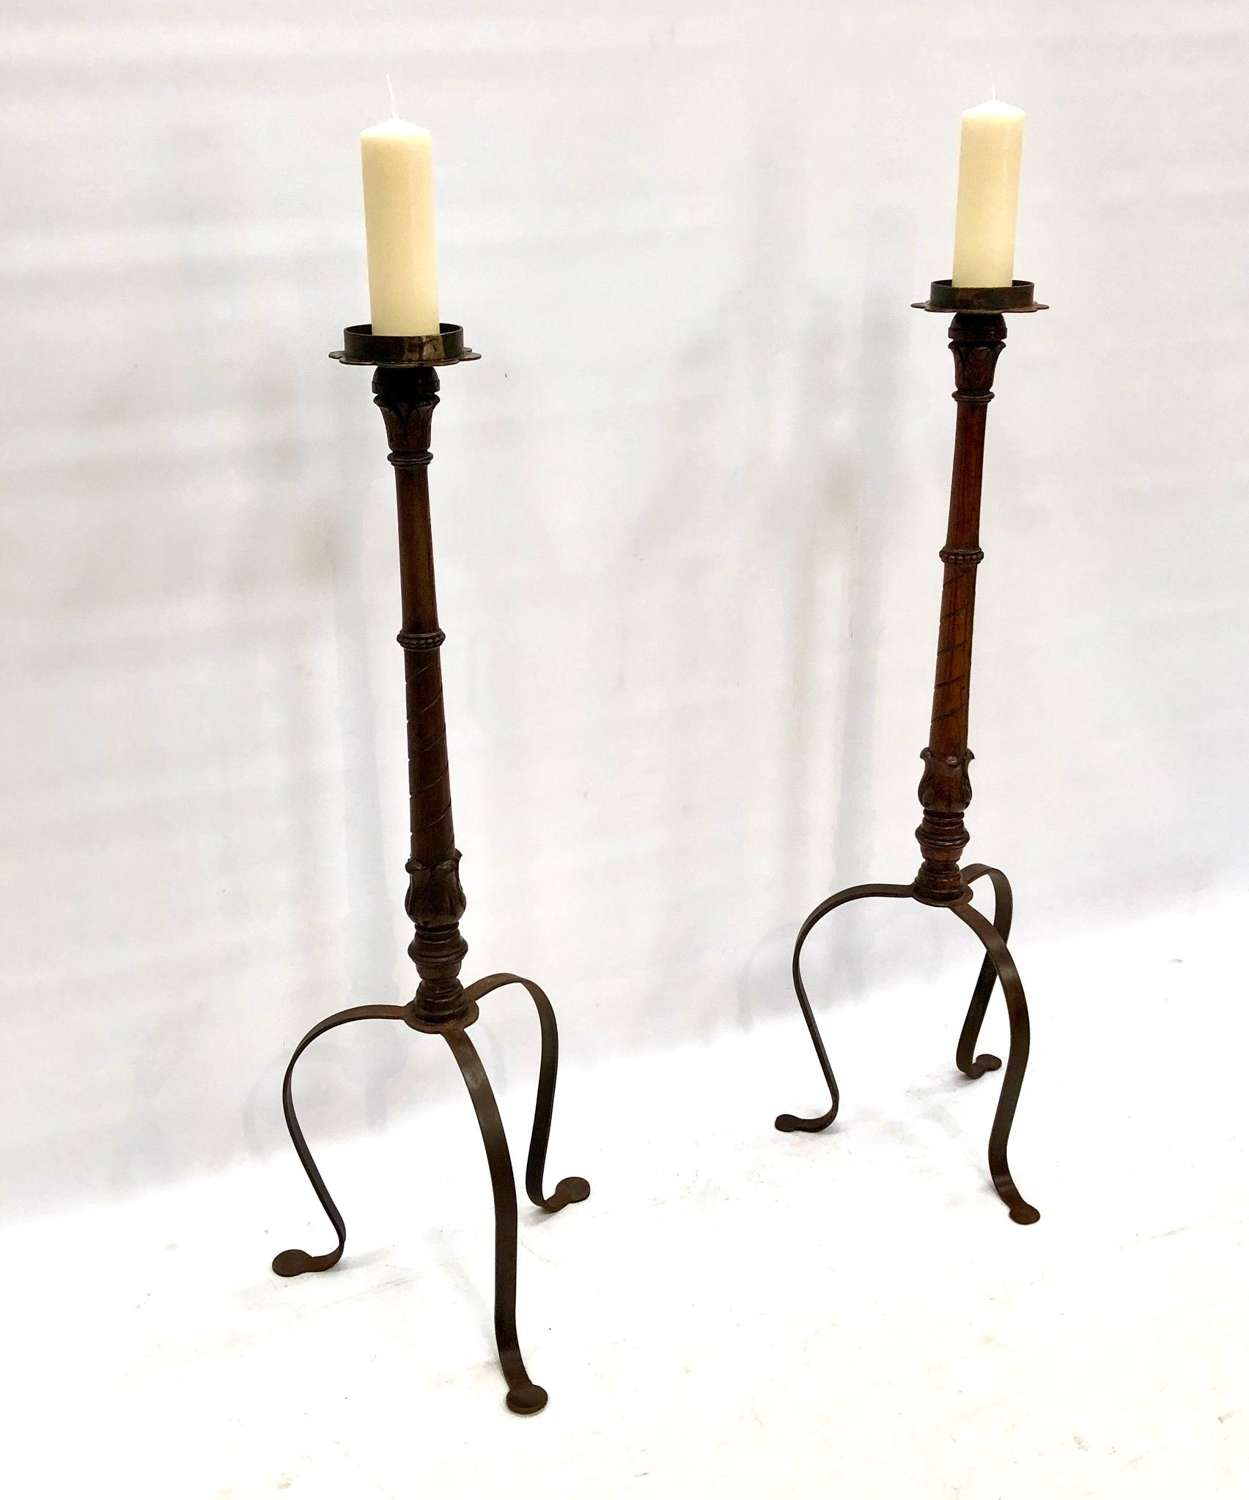 A pair of ecclesiastic candle stands